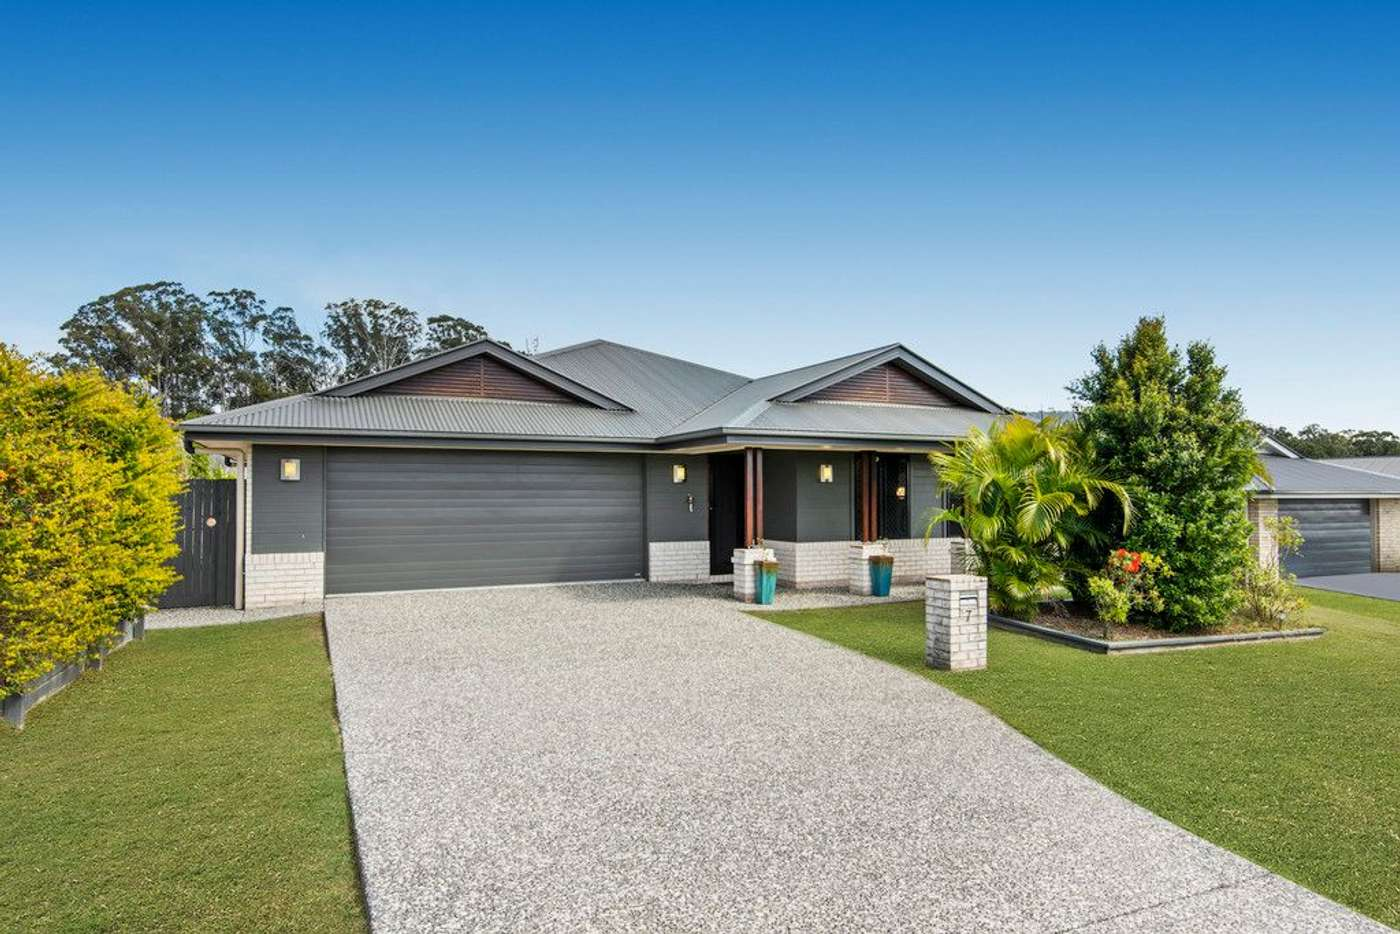 Main view of Homely house listing, 7 Pineview Drive, Beerwah QLD 4519